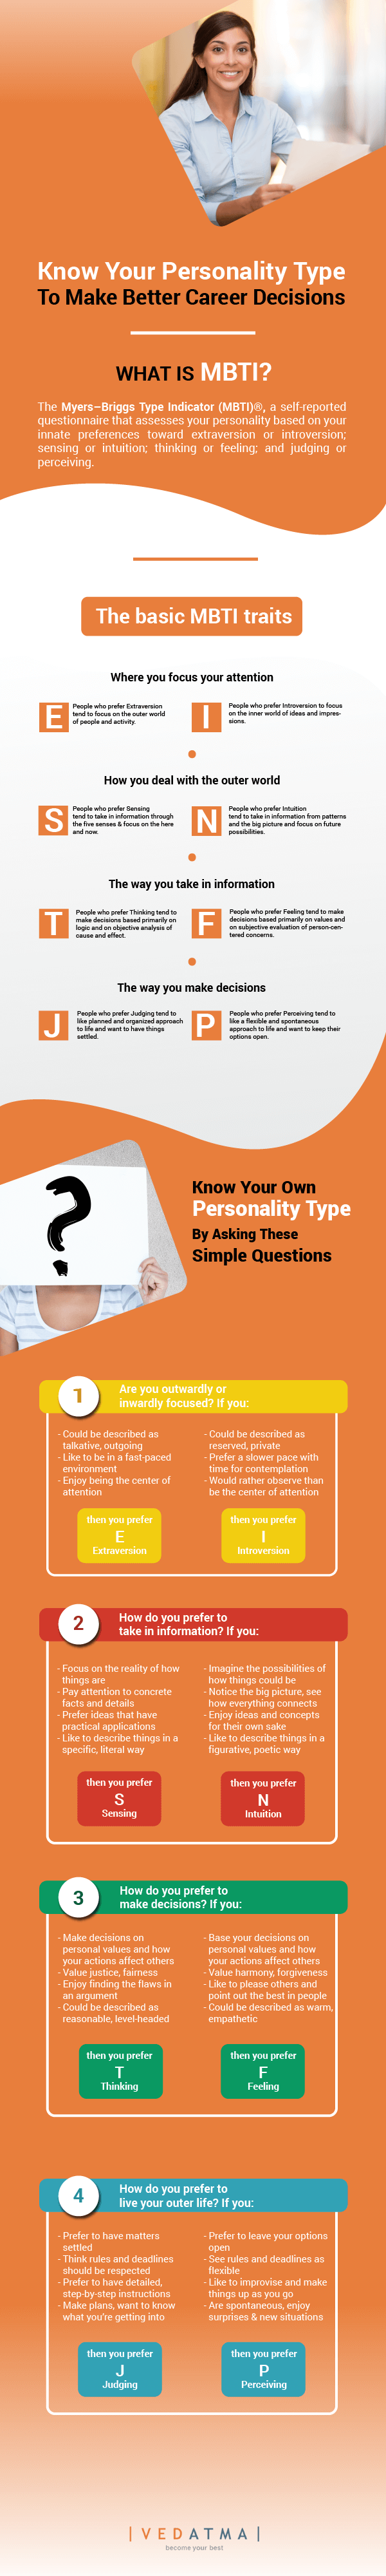 Know-Your-Personality-Type-To-Make-Better-Career-Decisions